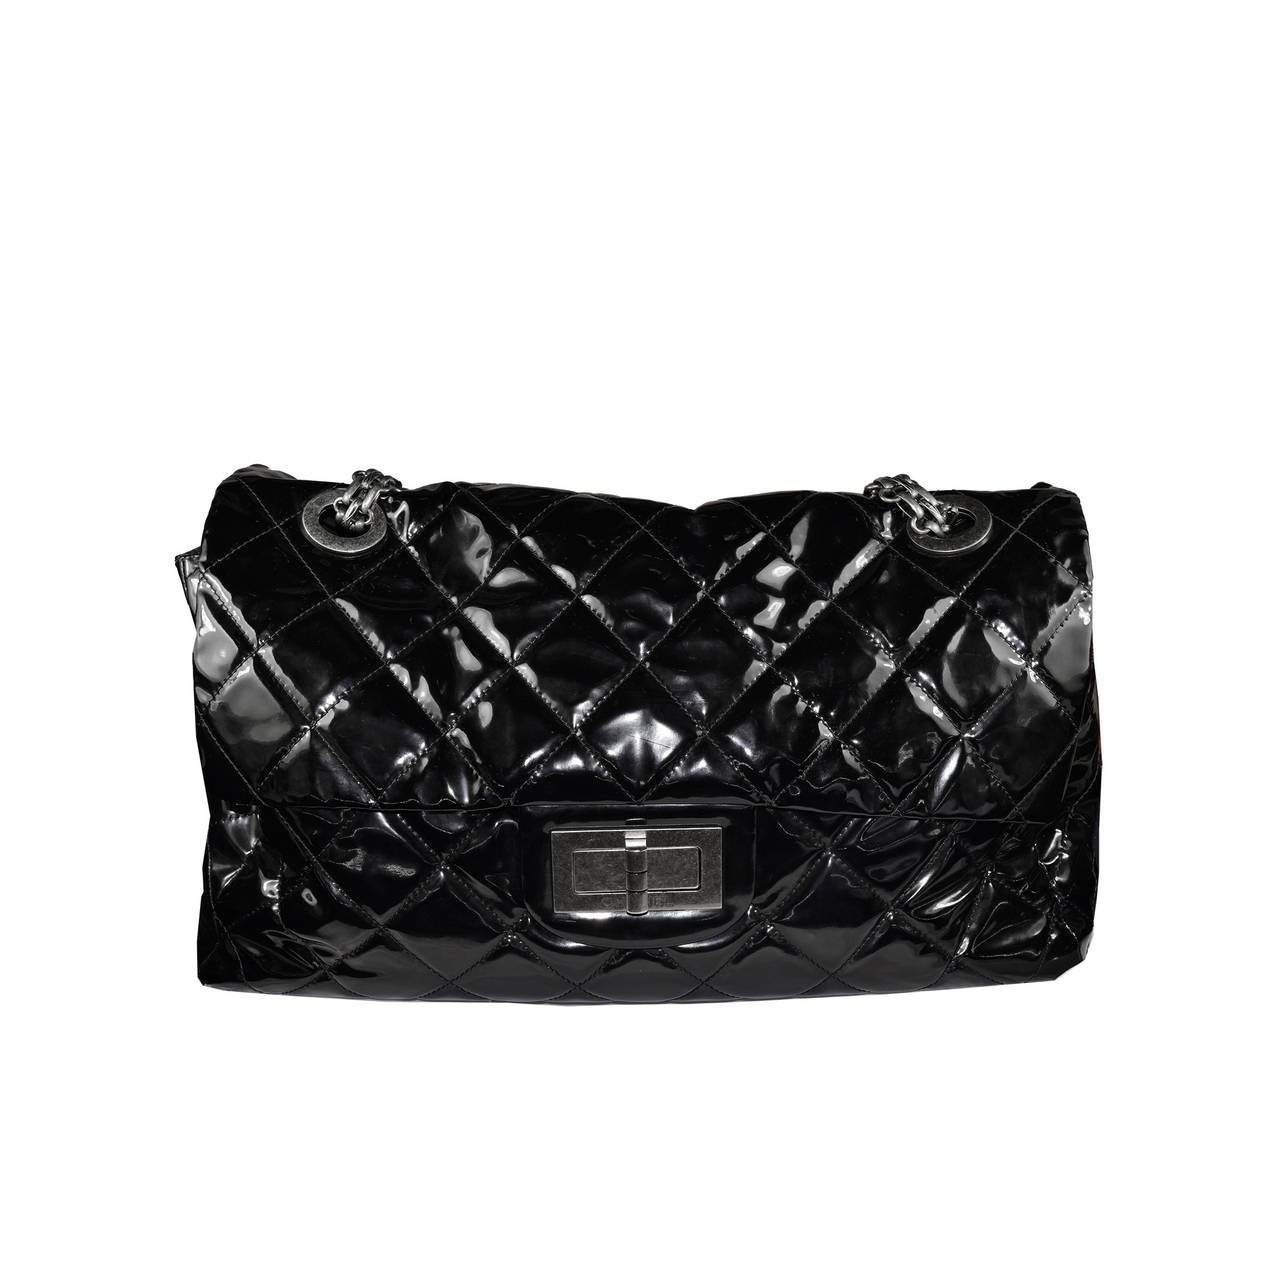 Oversized Chanel Patent Bag For Sale